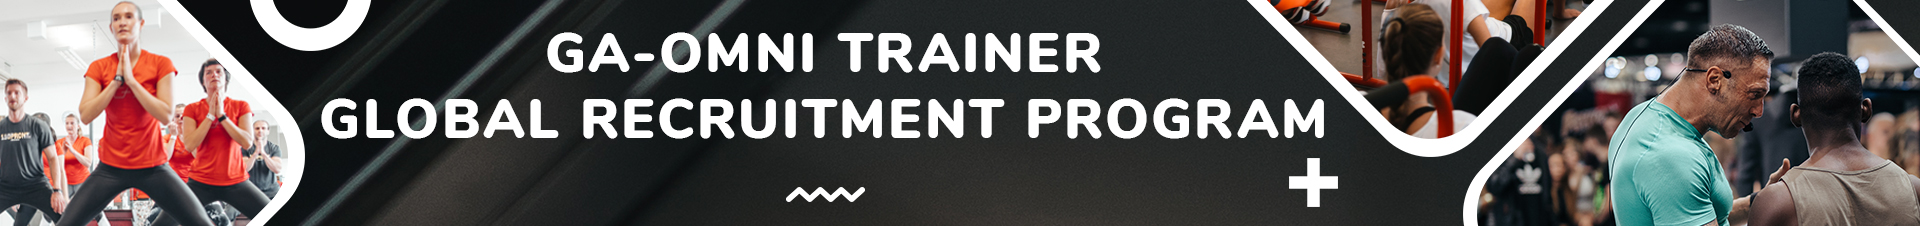 GA-Omni Trainer Global Recruitment Program | Gym Aesthetics